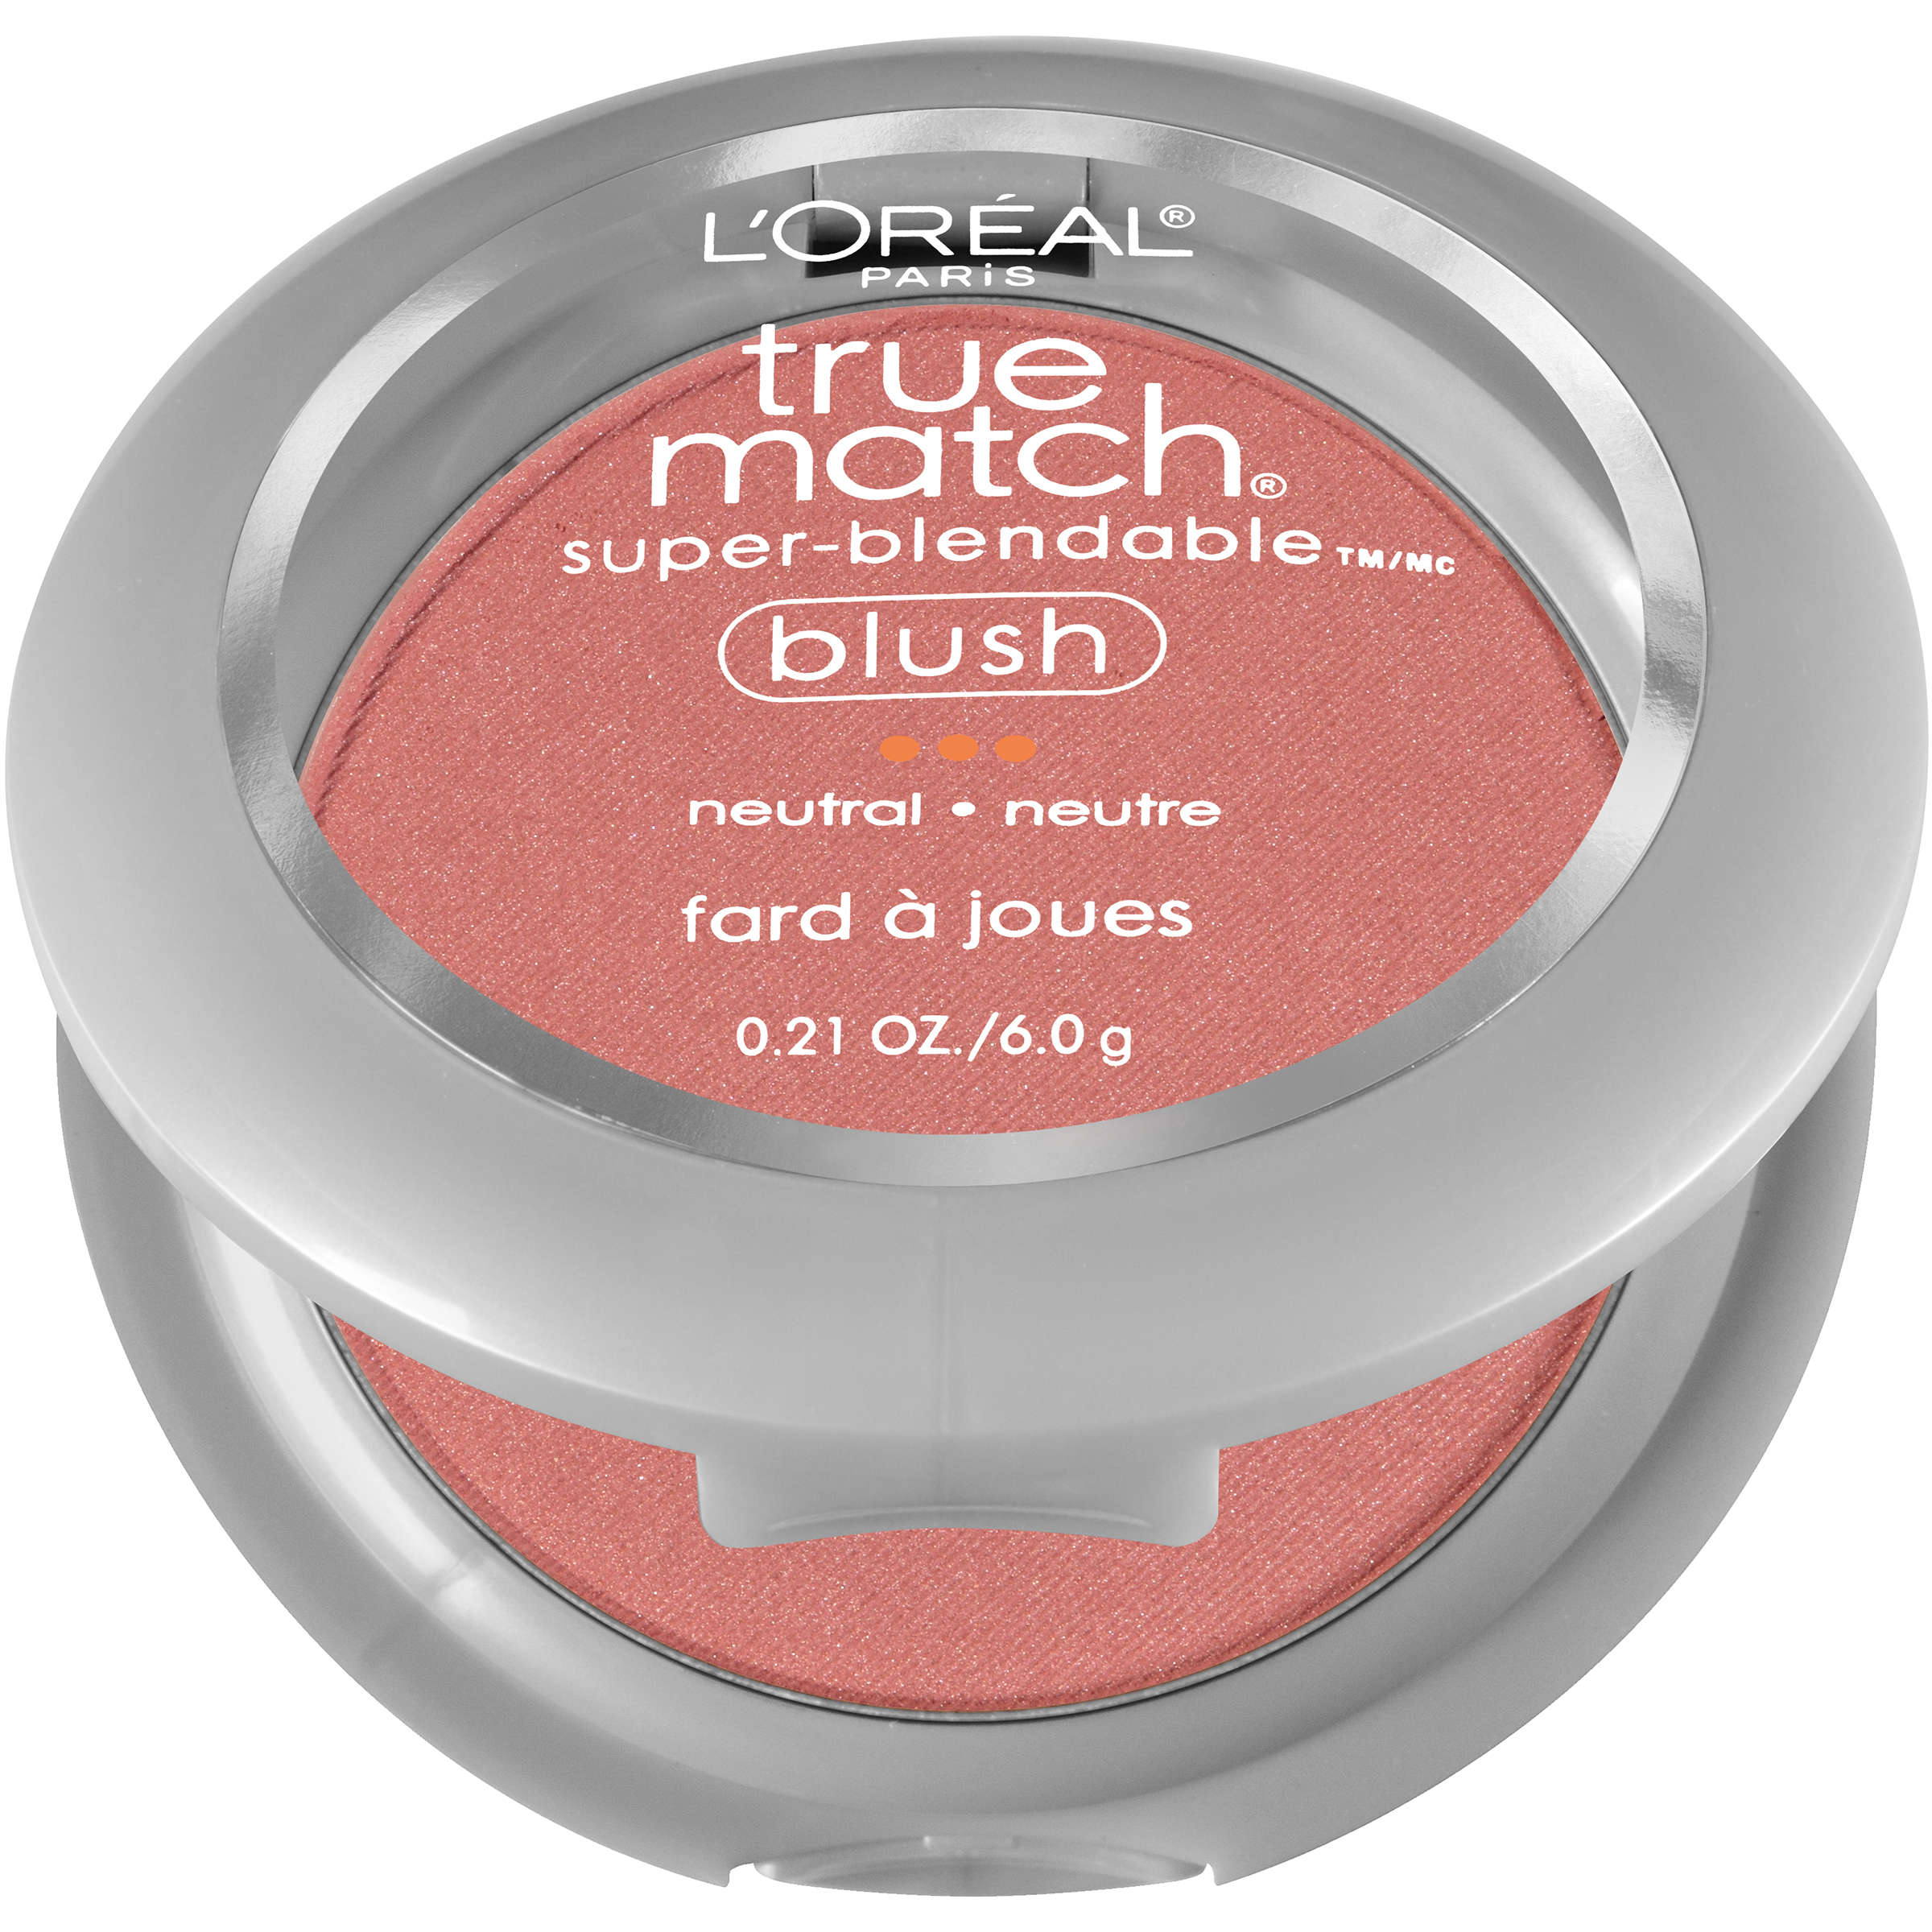 TRUE MATCH BLUSH APRICOT KISS